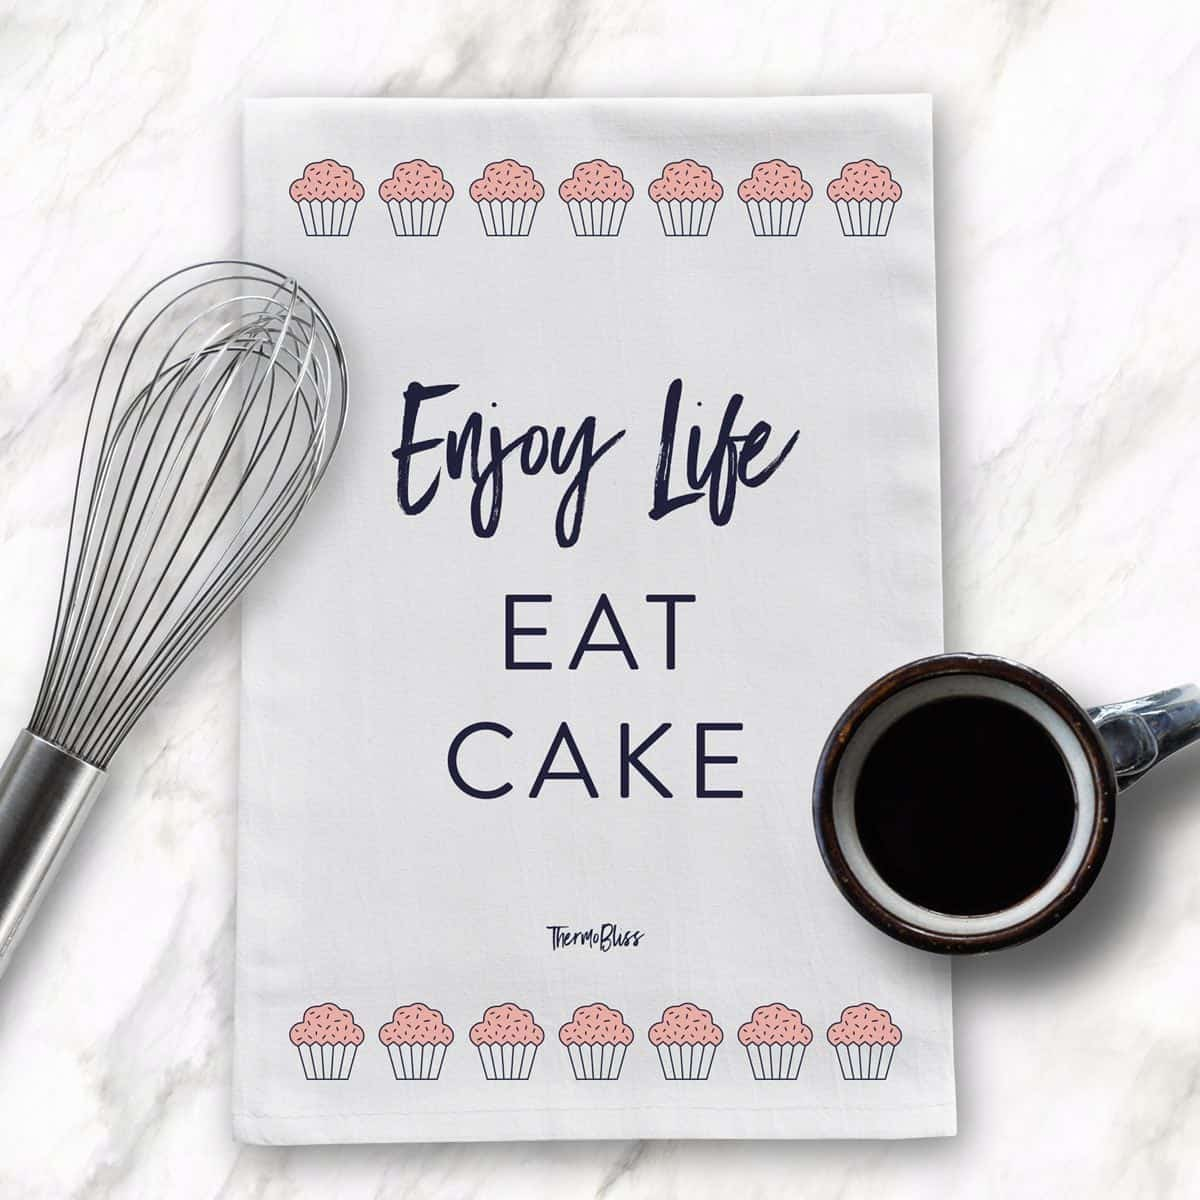 Our 'Enjoy Life. Eat Cake' tea towel is the perfect gift for yourself or a friend! Made from 100% premium cotton. RRP $19.95 (includes FREE SHIPPING).